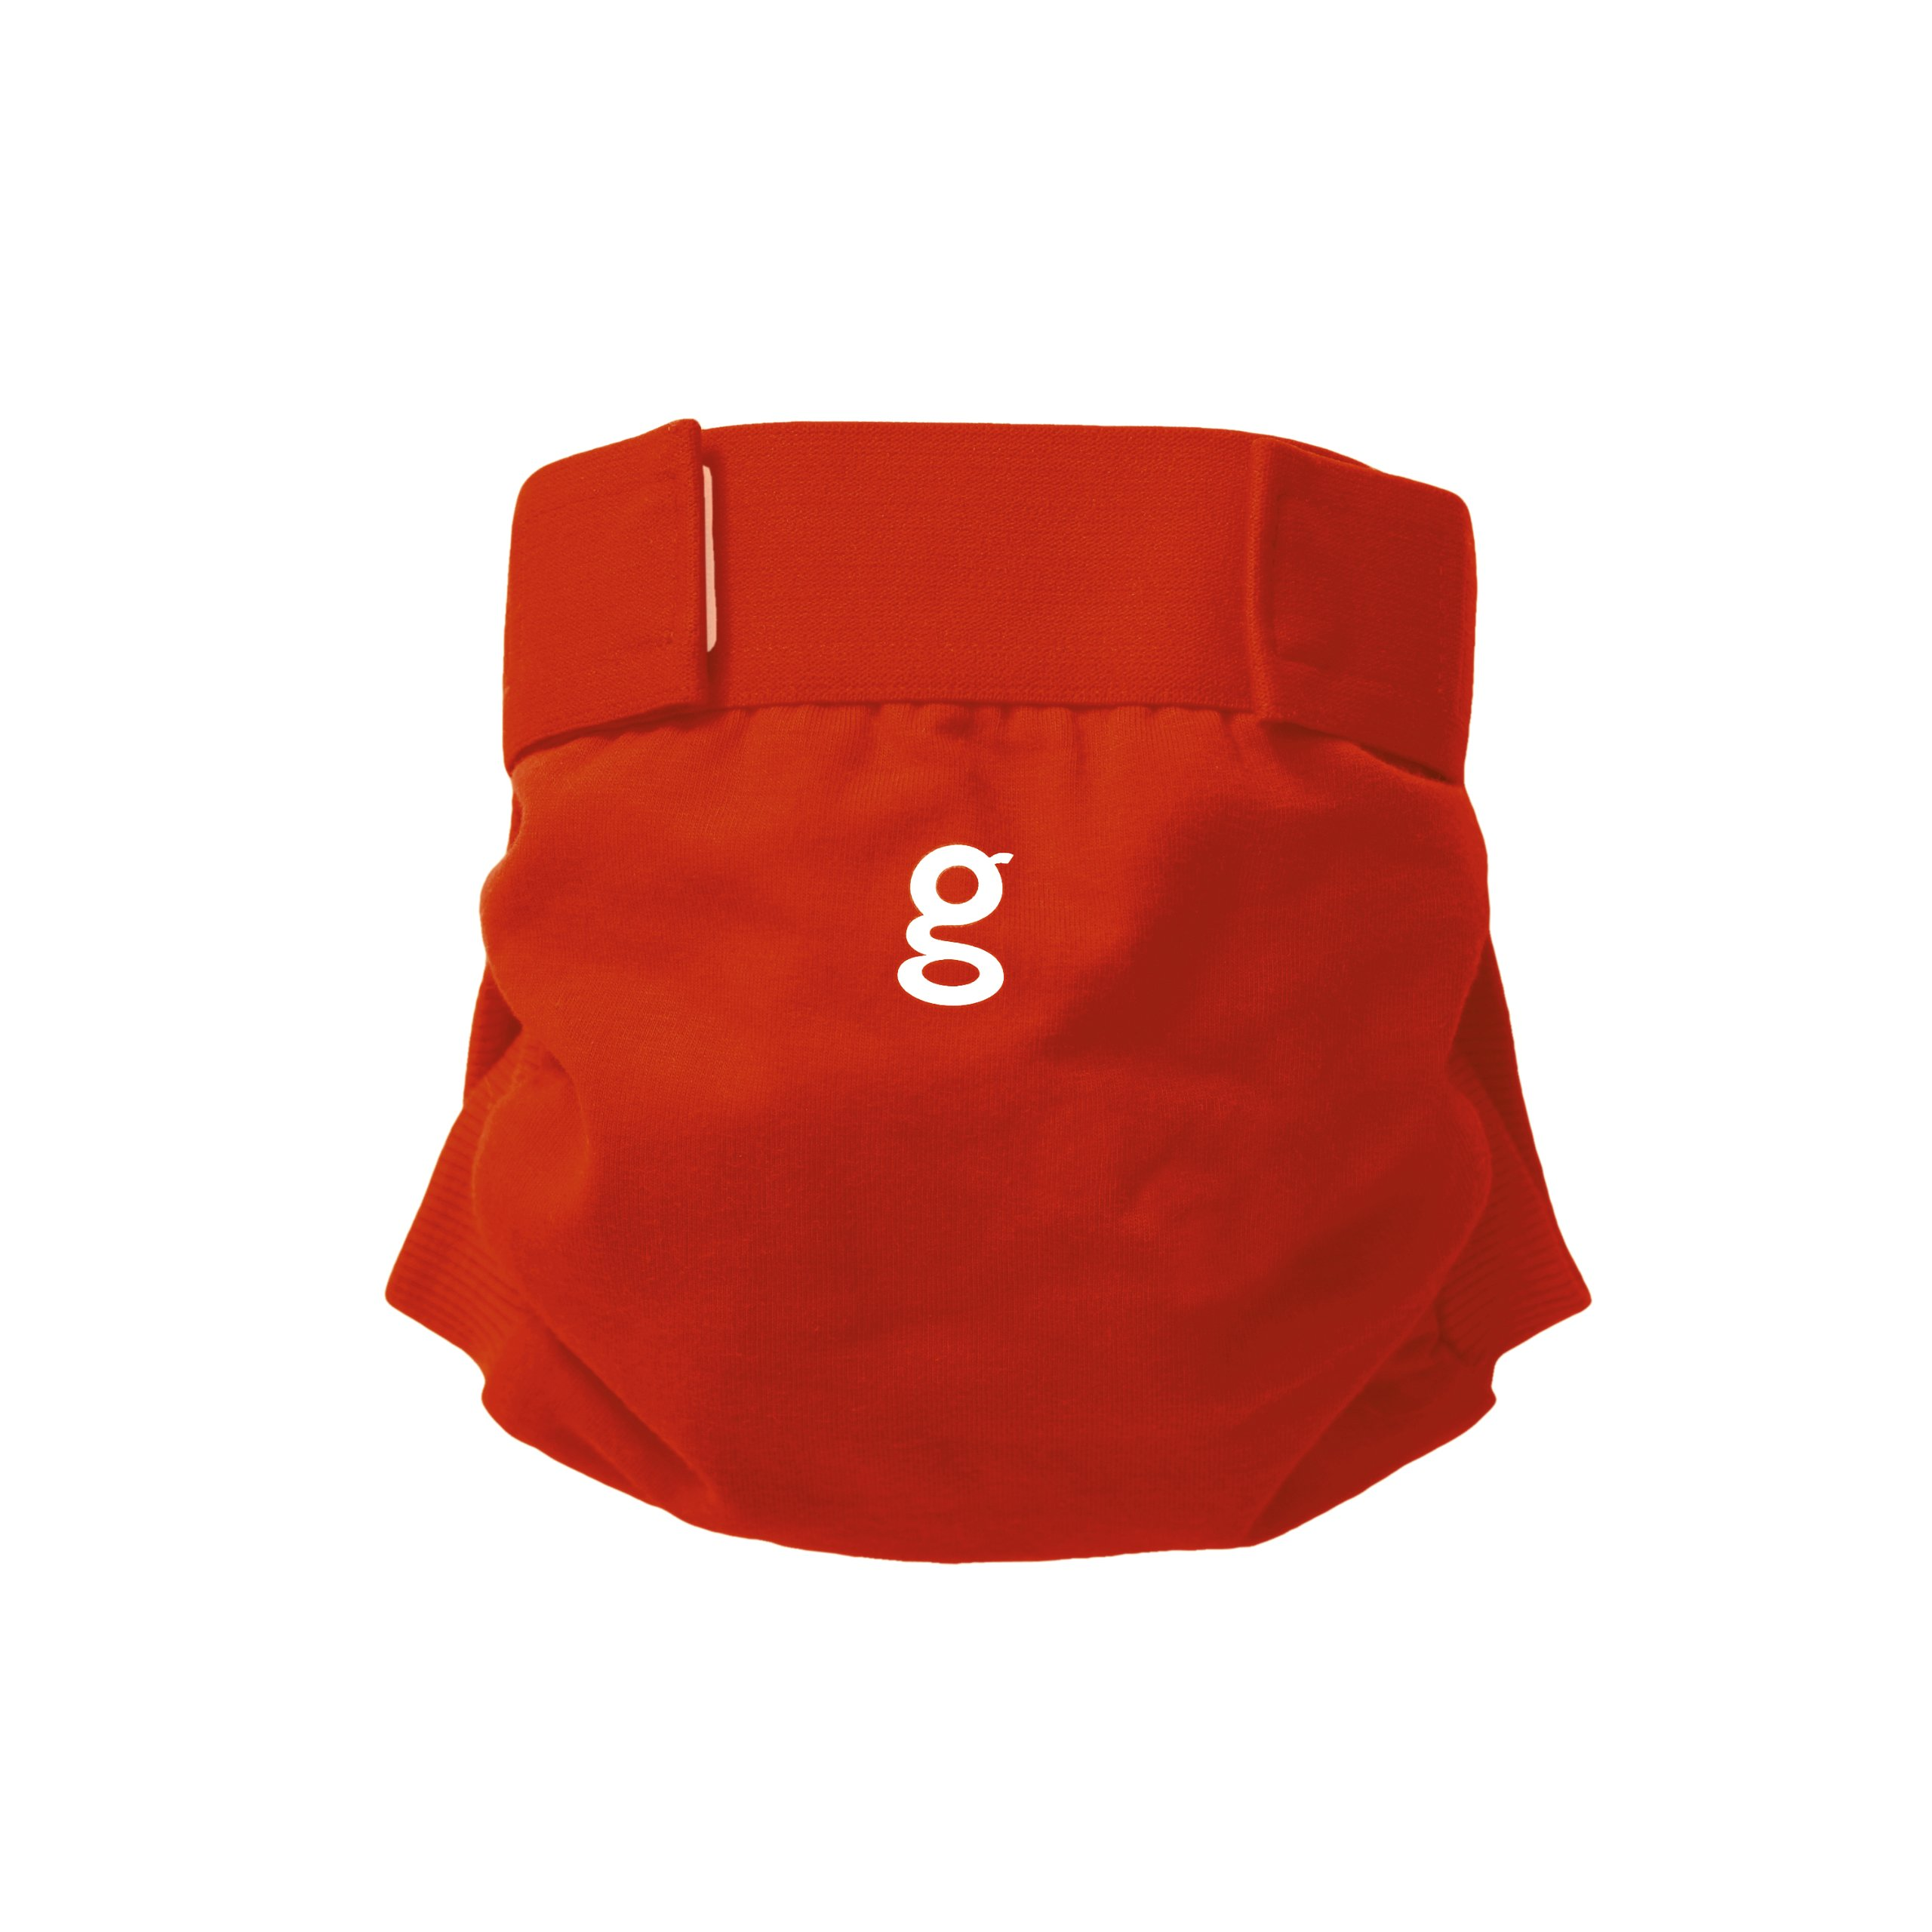 gDiapers gPants Hybrid Cloth Diapers - Hook & Loop - Good Fortune Red - Small